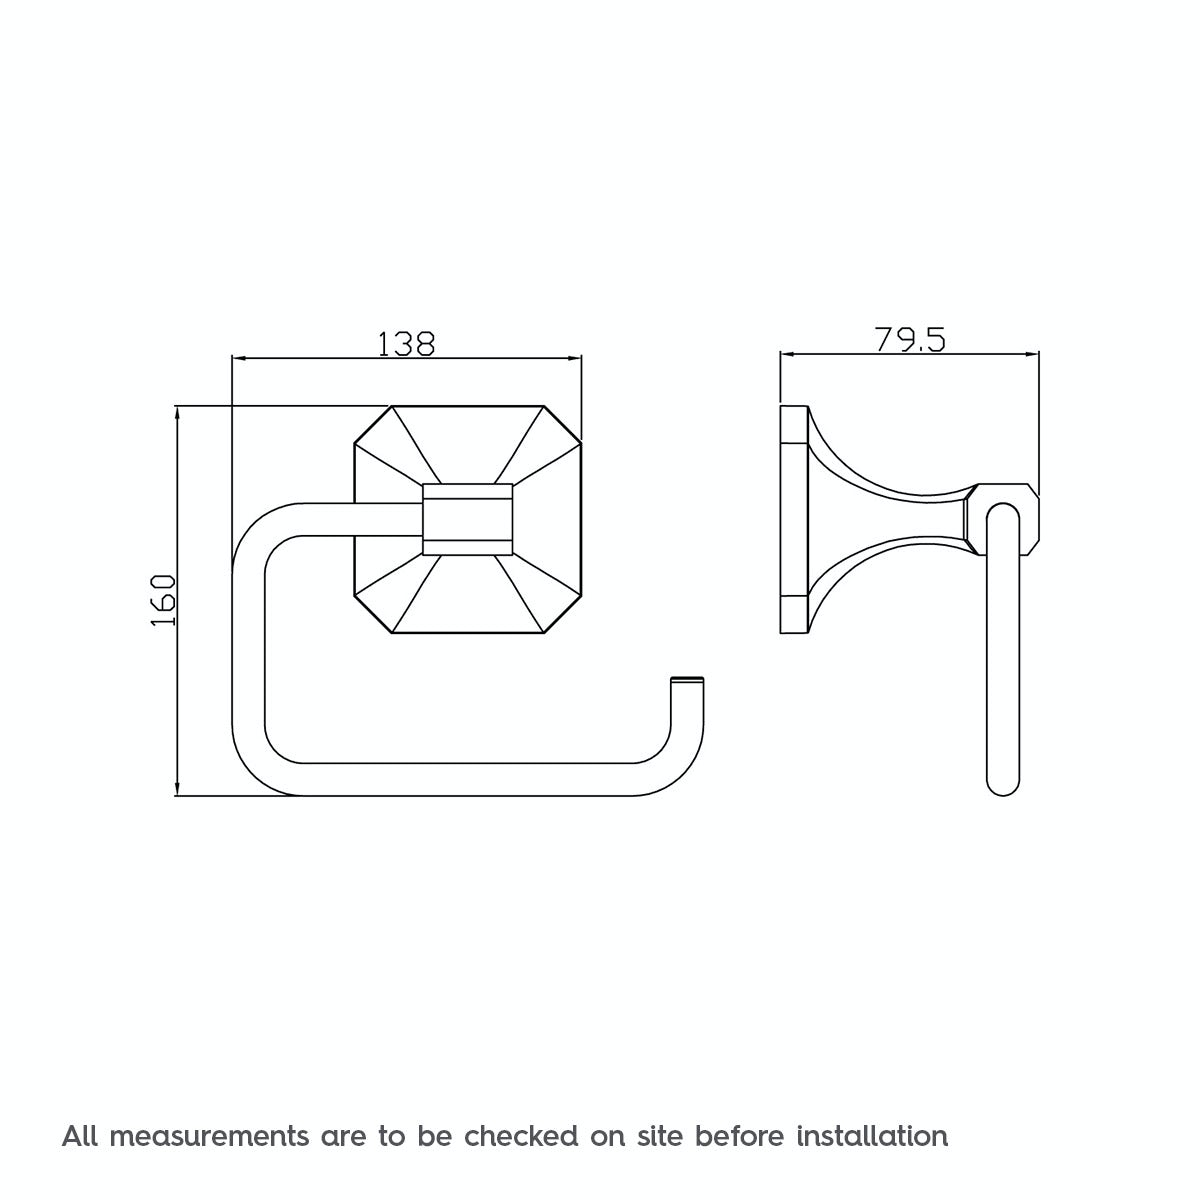 Dimensions for The Bath Co. Camberley toilet roll holder